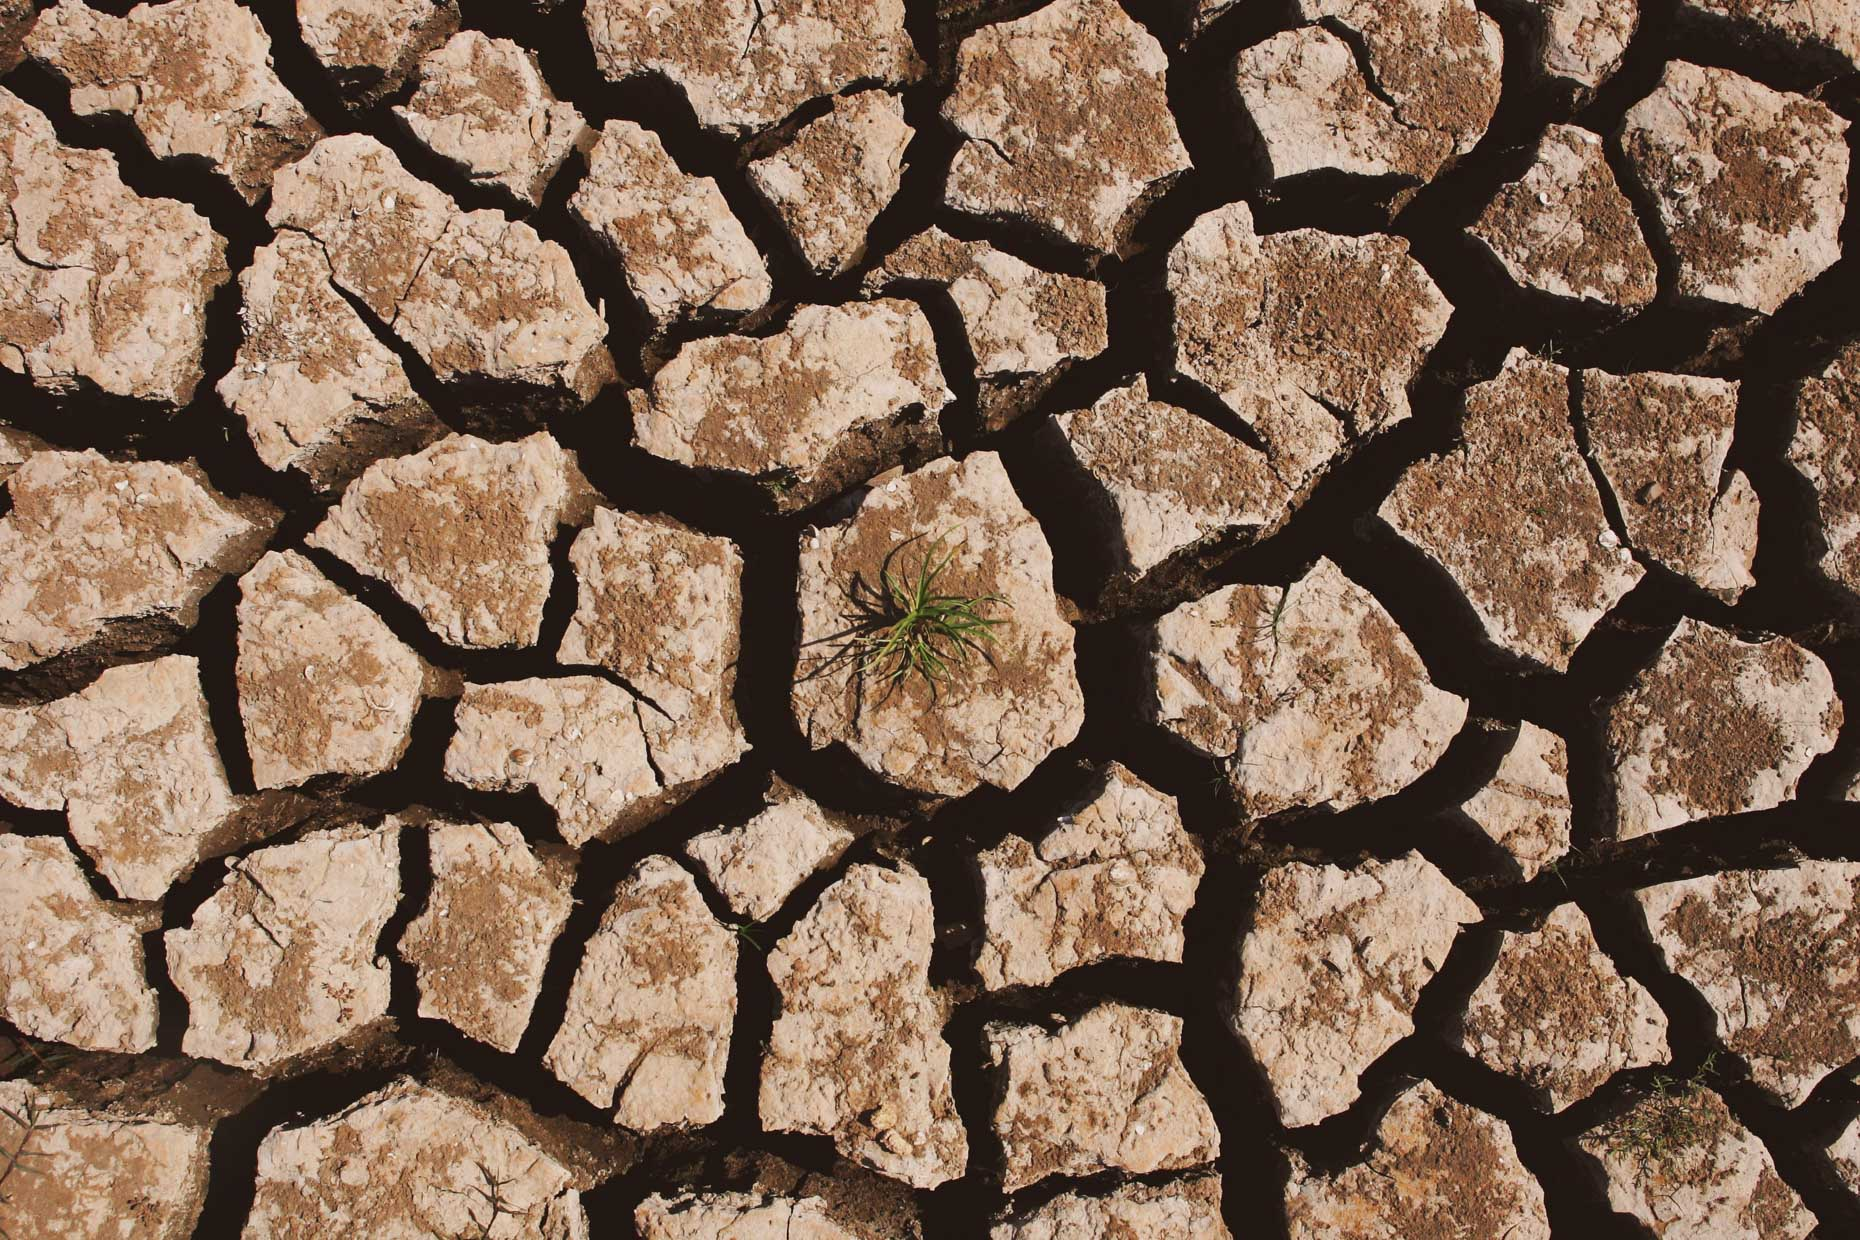 Dry cracked earth from drought